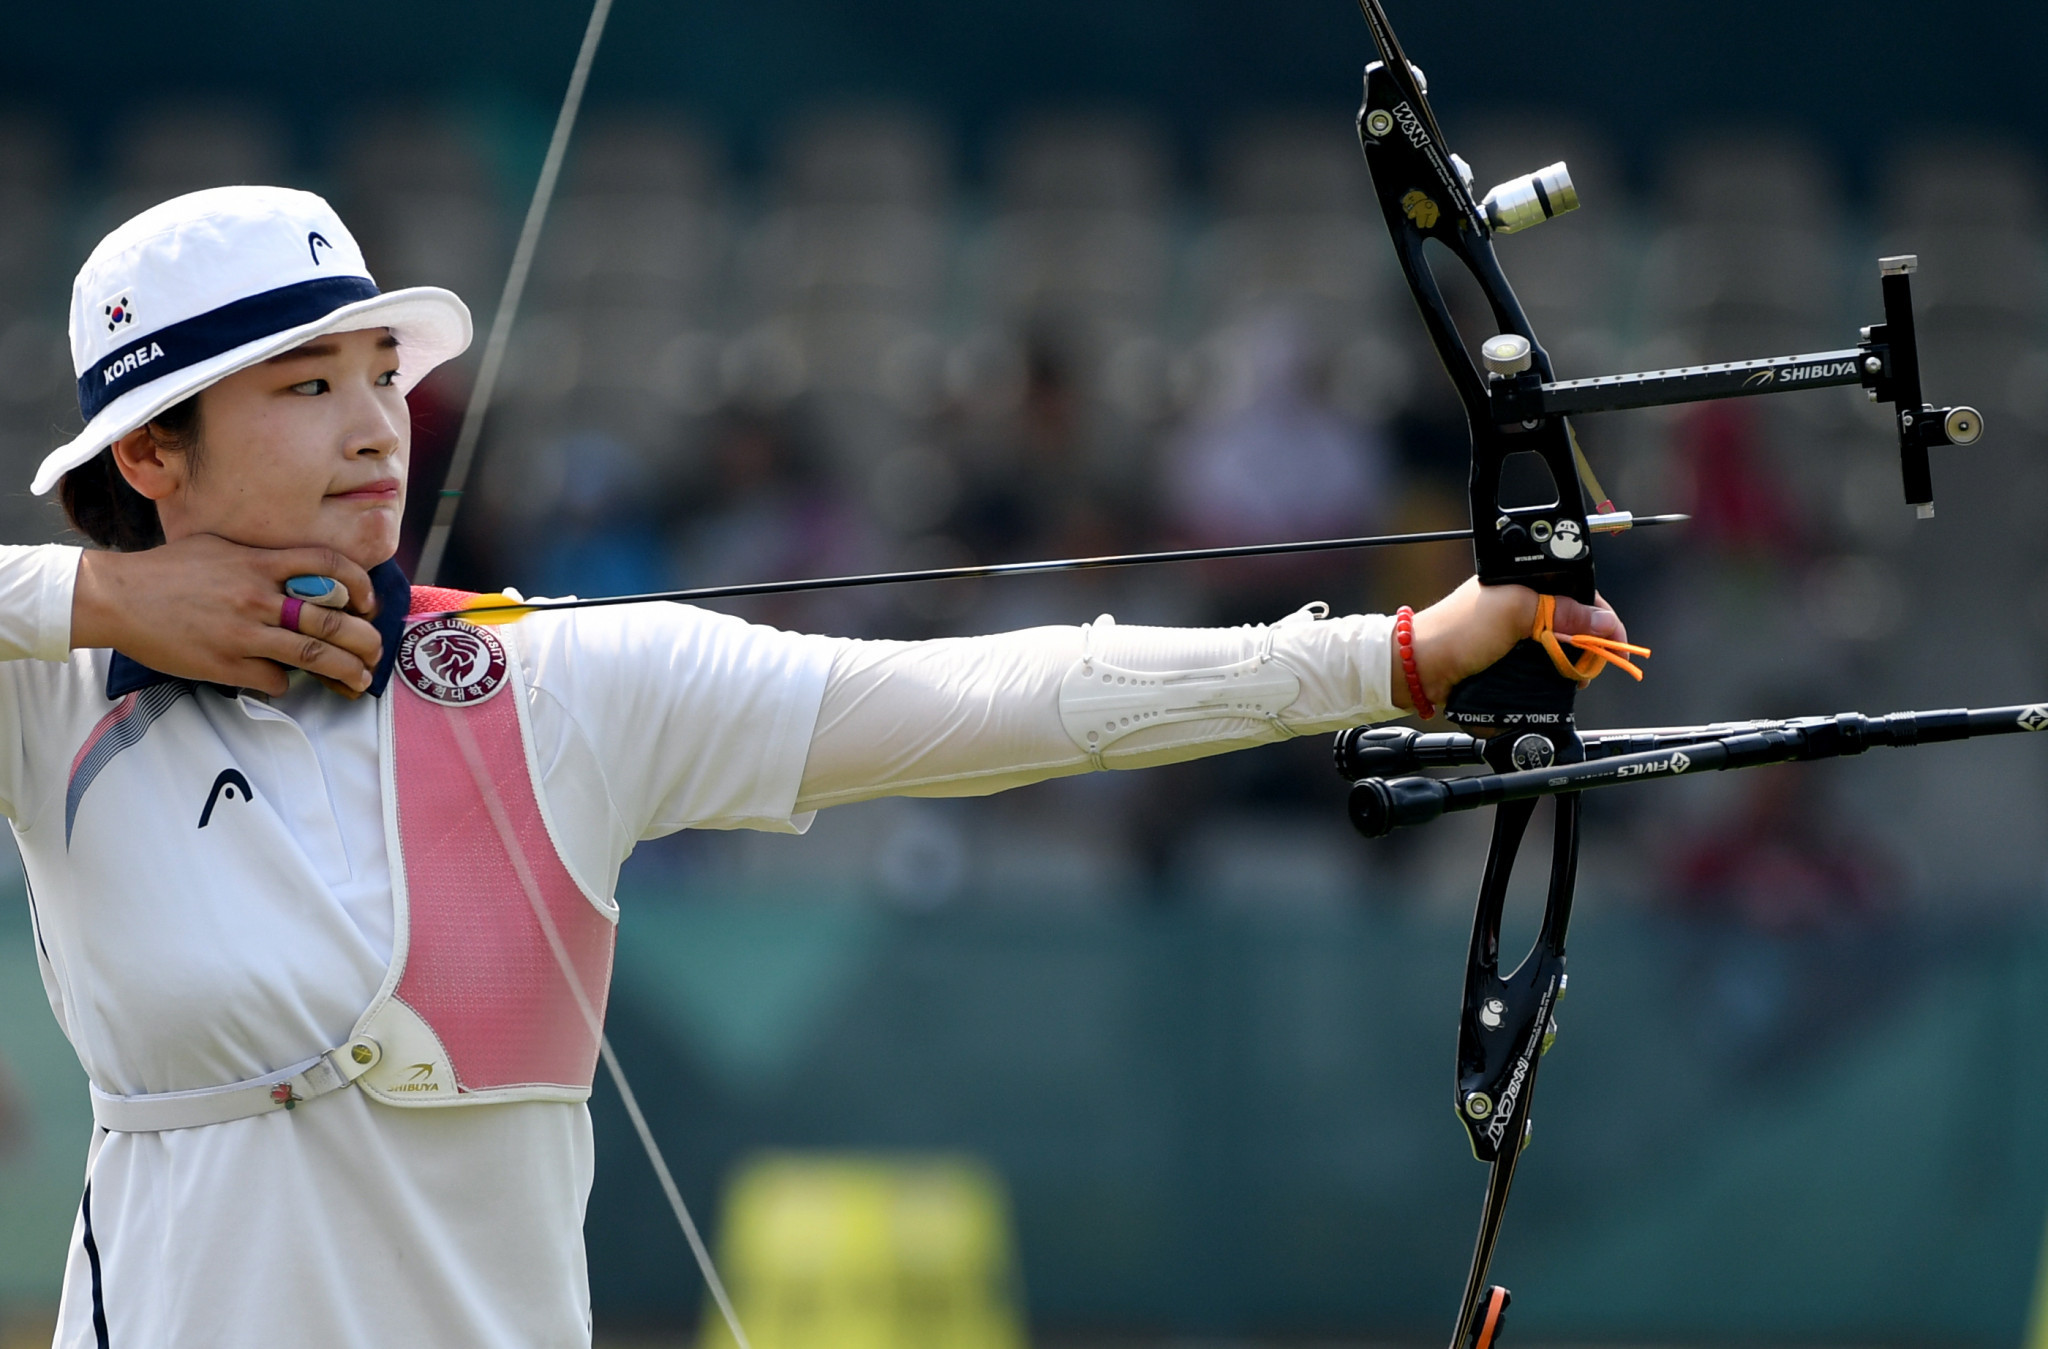 World record holder Kang Chae Young held off a strong challenge from three fellow South Koreans to take first place in the women's recurve qualification standings at the Indoor Archery World Series event in Nîmes in France ©Getty Images